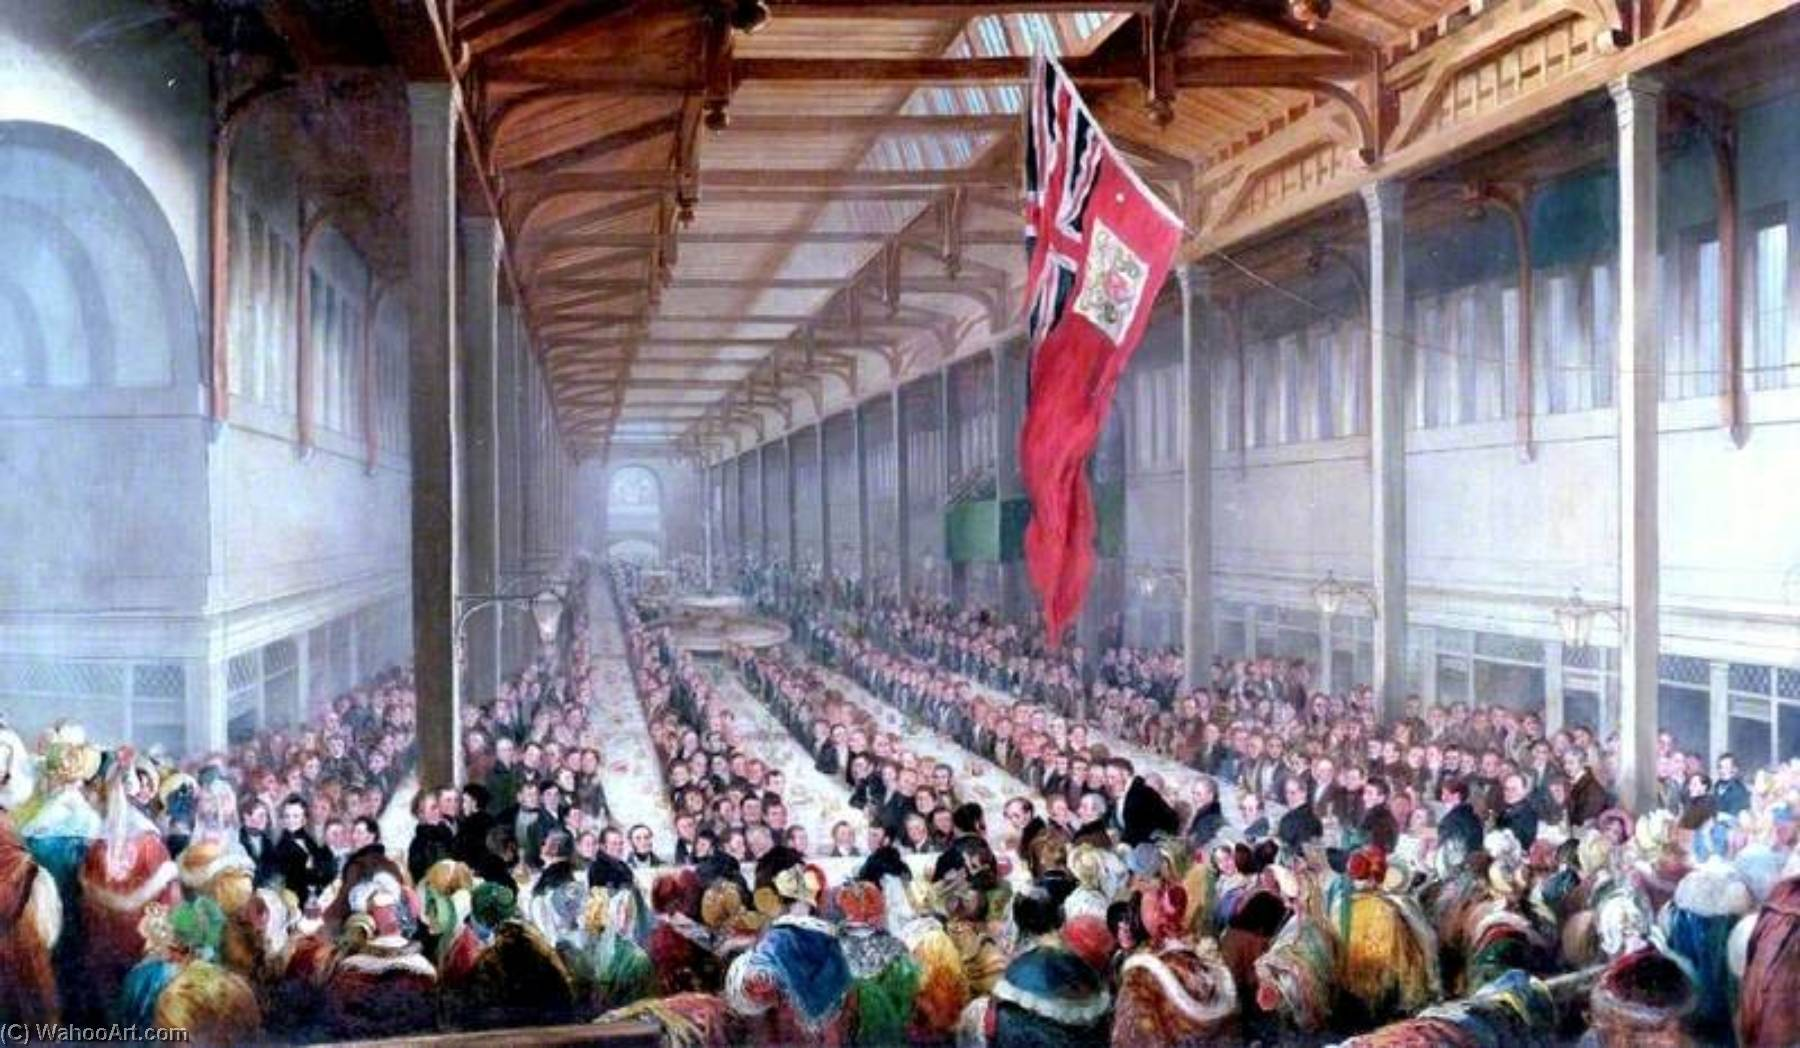 The Banquet Given on the Occasion of the Opening of the Grainger Market, Newcastle upon Tyne, 1835, 1835 by Henry Perlee Parker | Museum Quality Copies Henry Perlee Parker | WahooArt.com